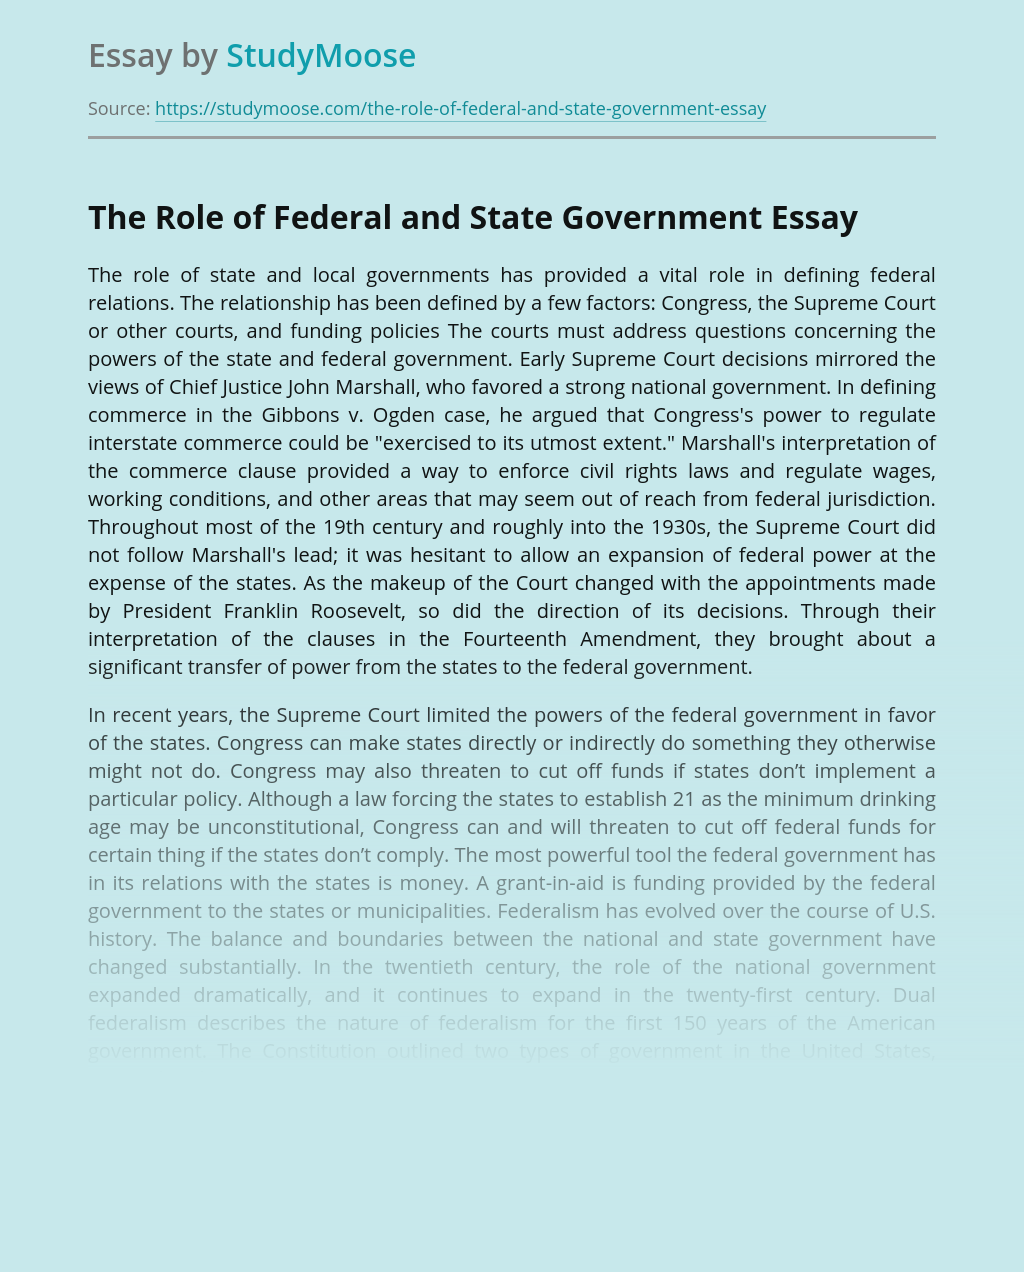 The Role of Federal and State Government